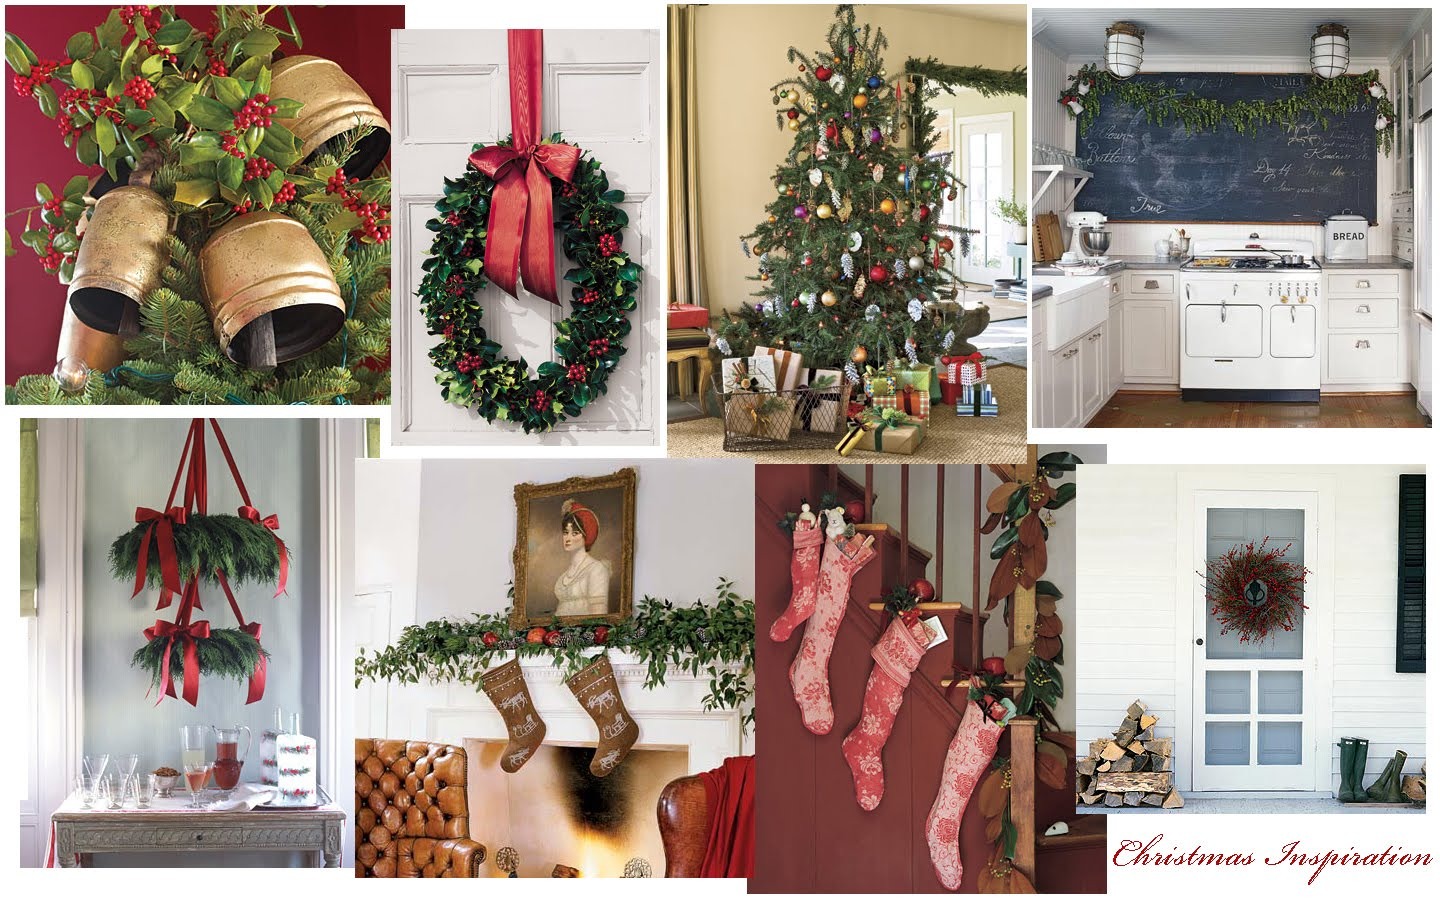 The Newlywed Diaries: Day 885's Christmas decorating inspiration